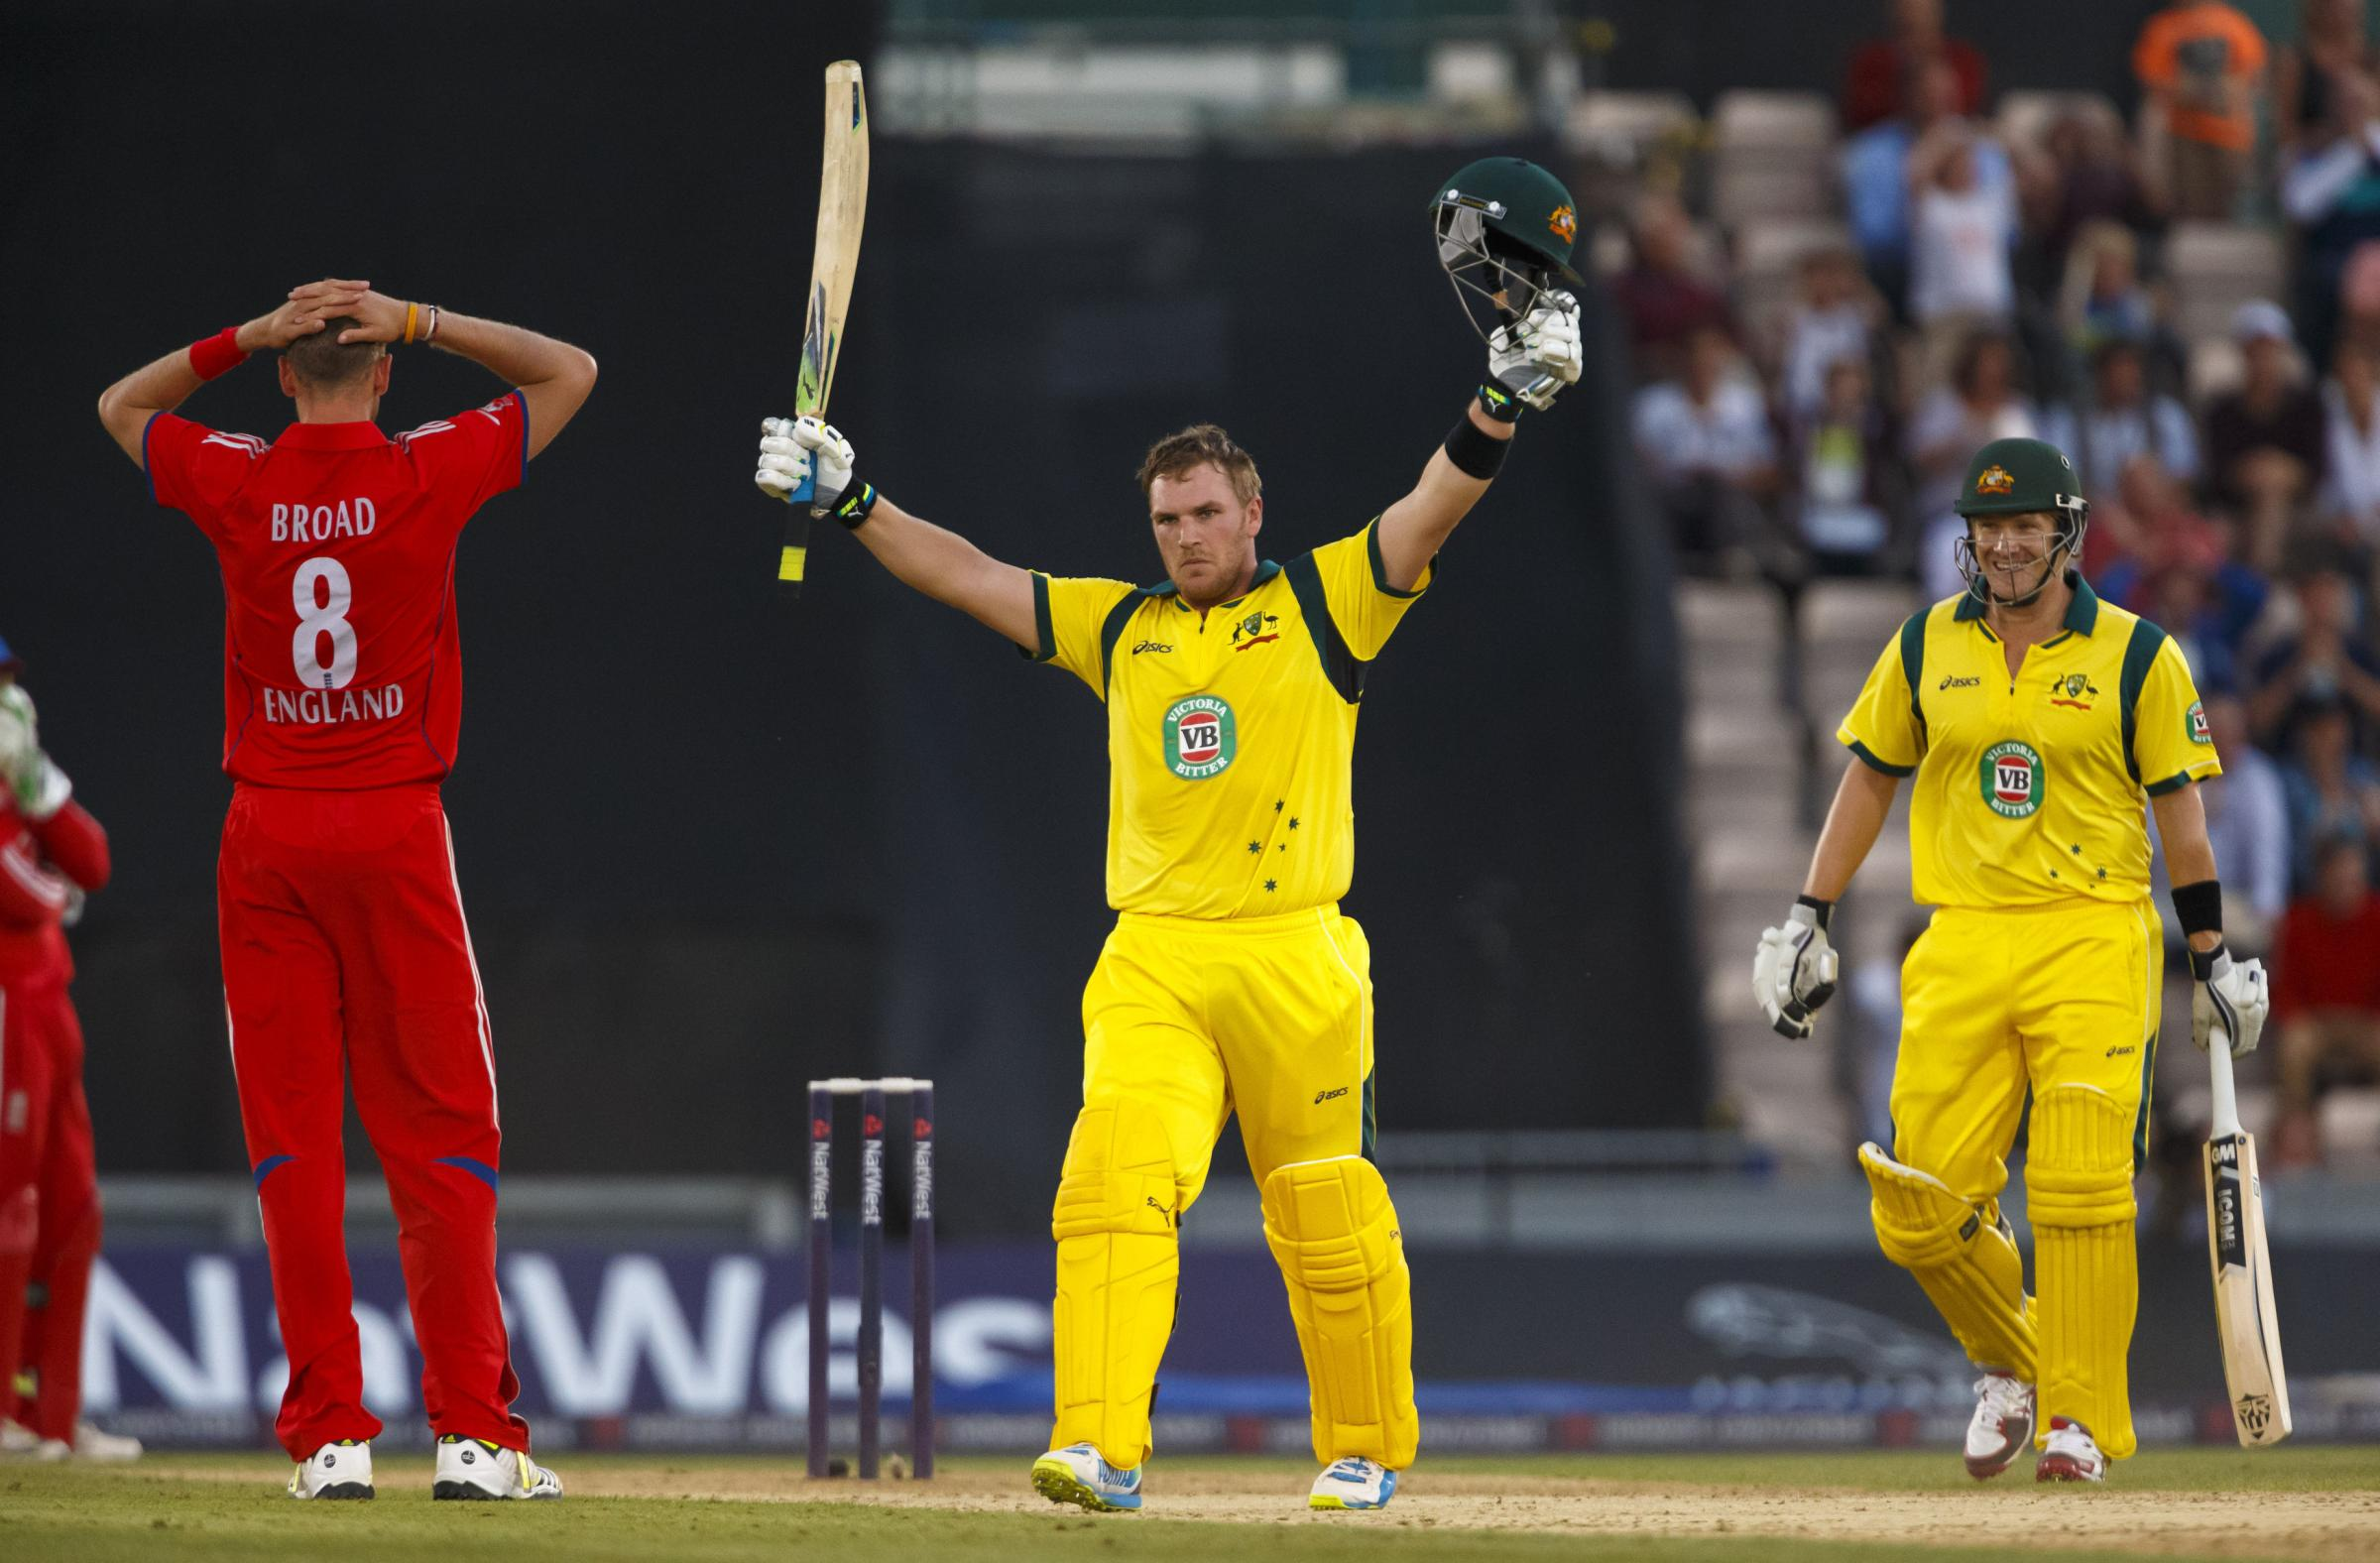 THIRD IN THE WORLD: Aaron Finch smashed 156 in a T20 game against England last year